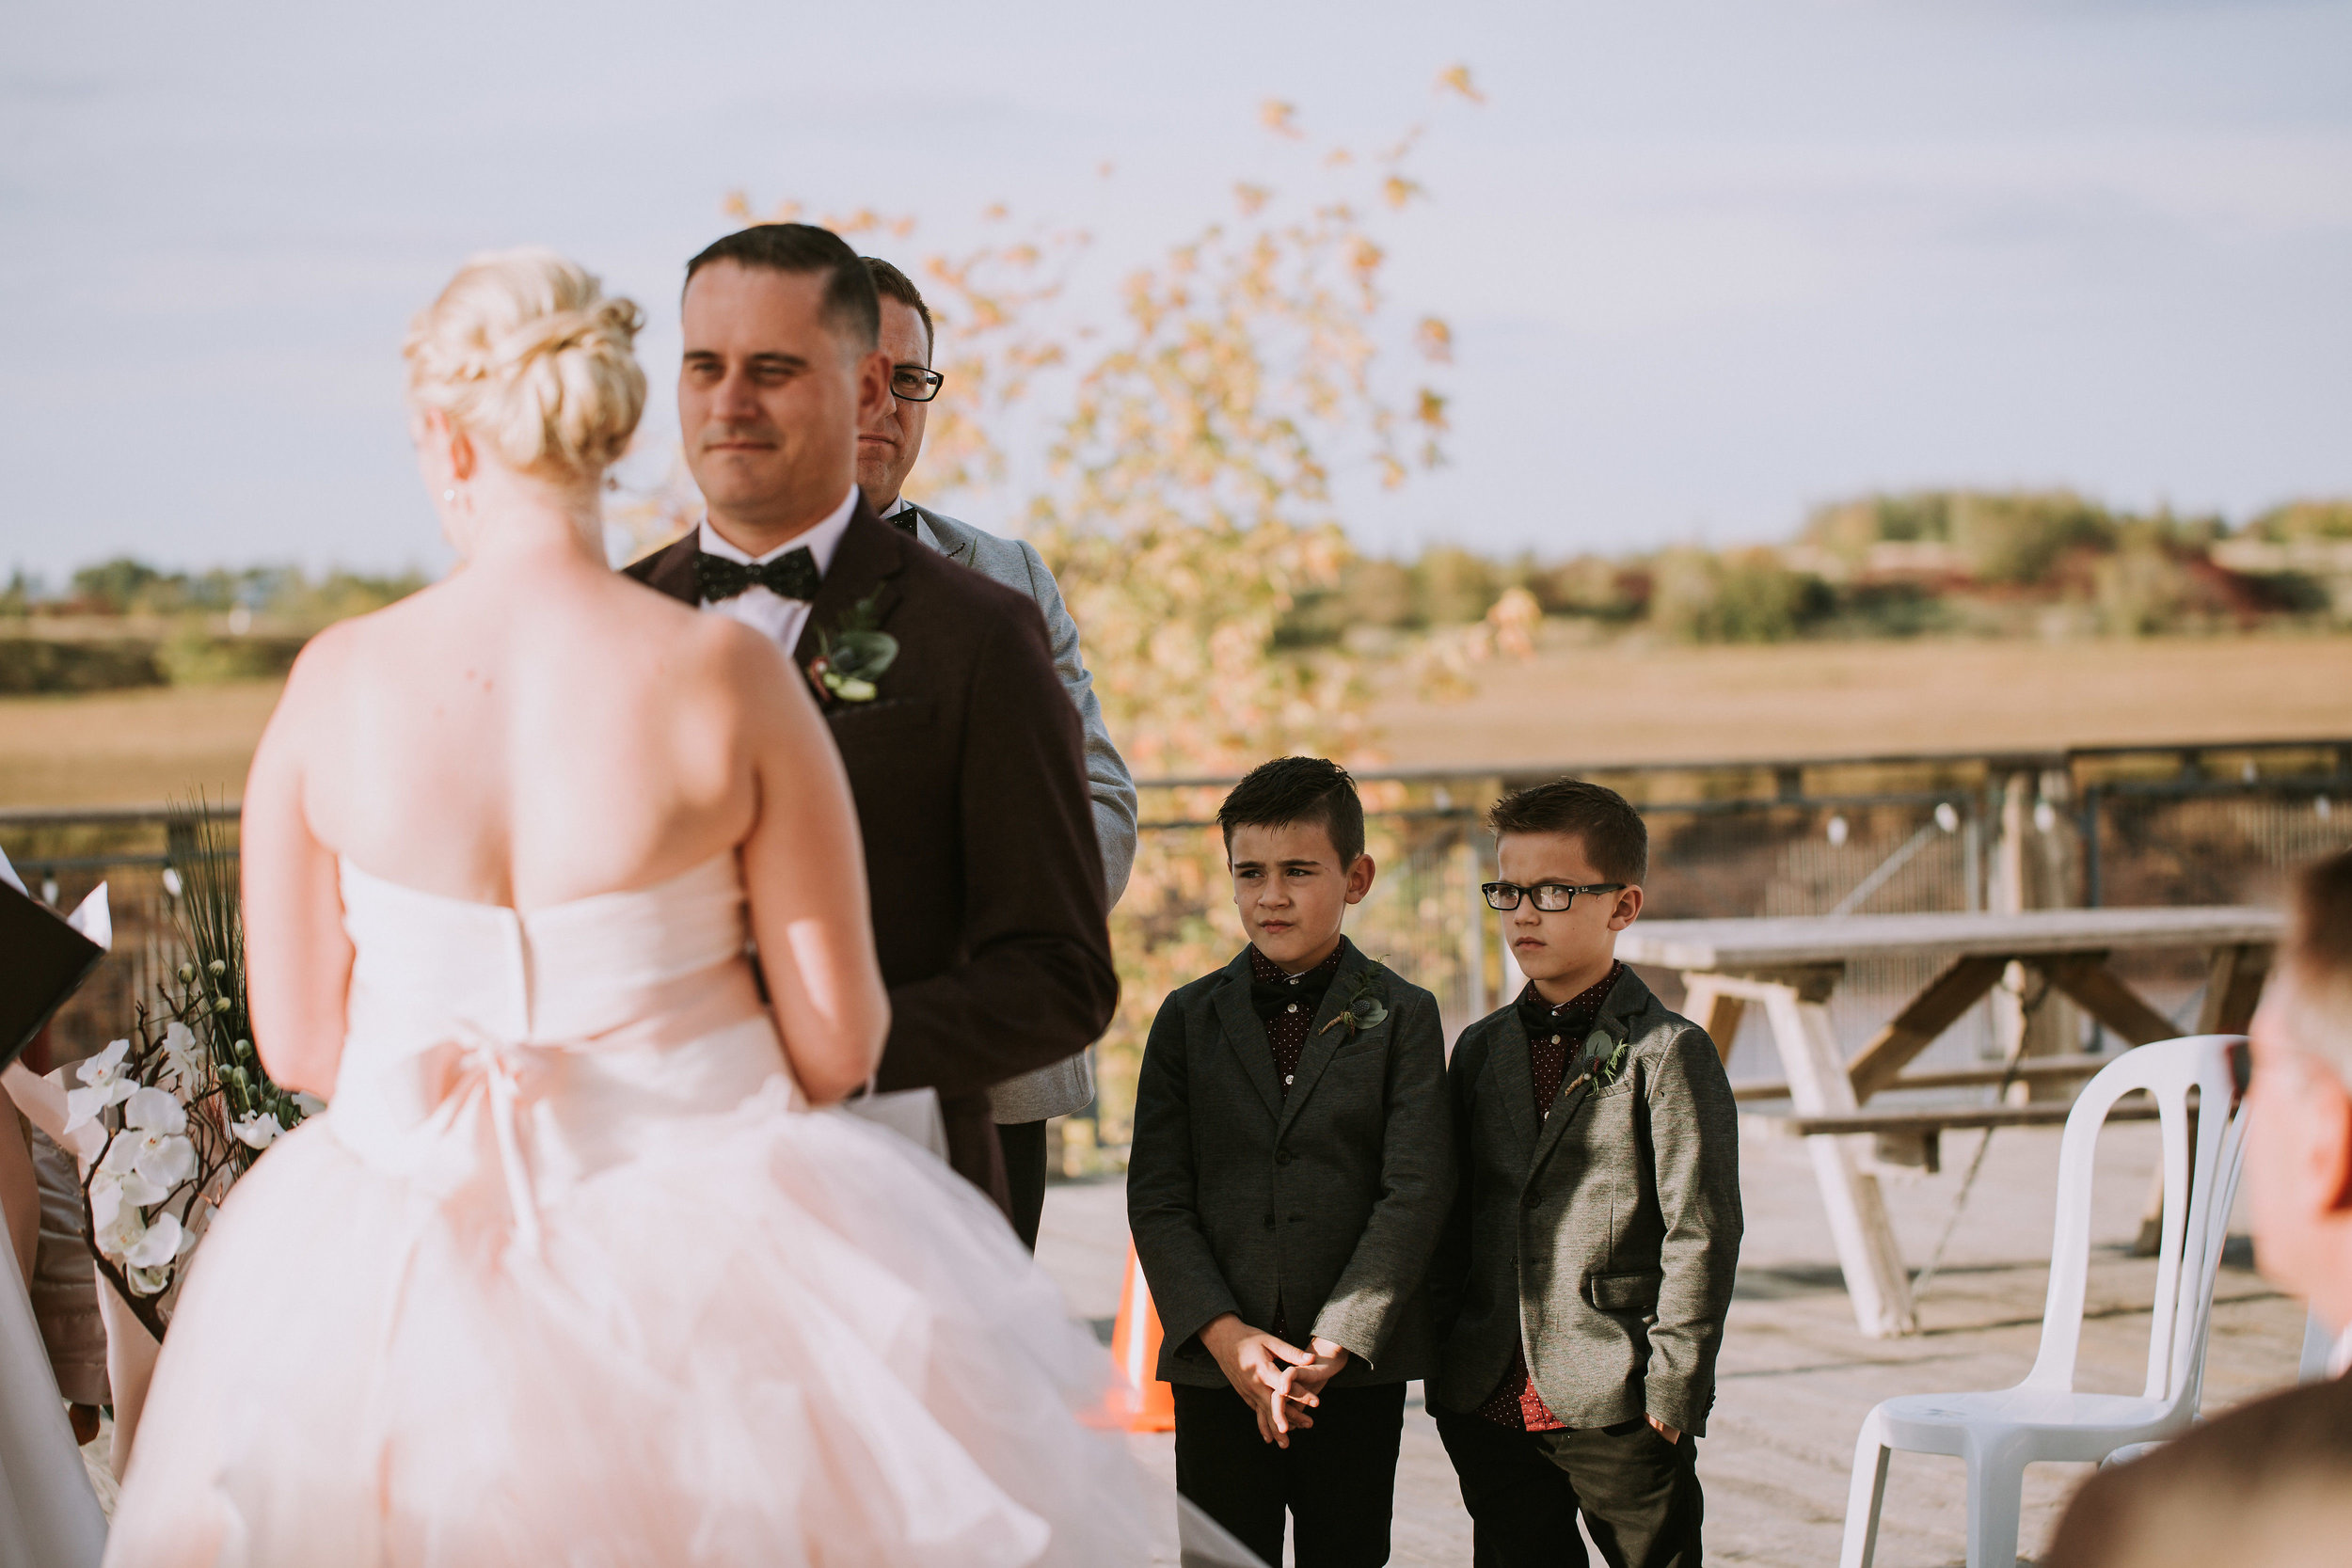 20171007_ShannonMayPhotography_MARRIED_302.jpg